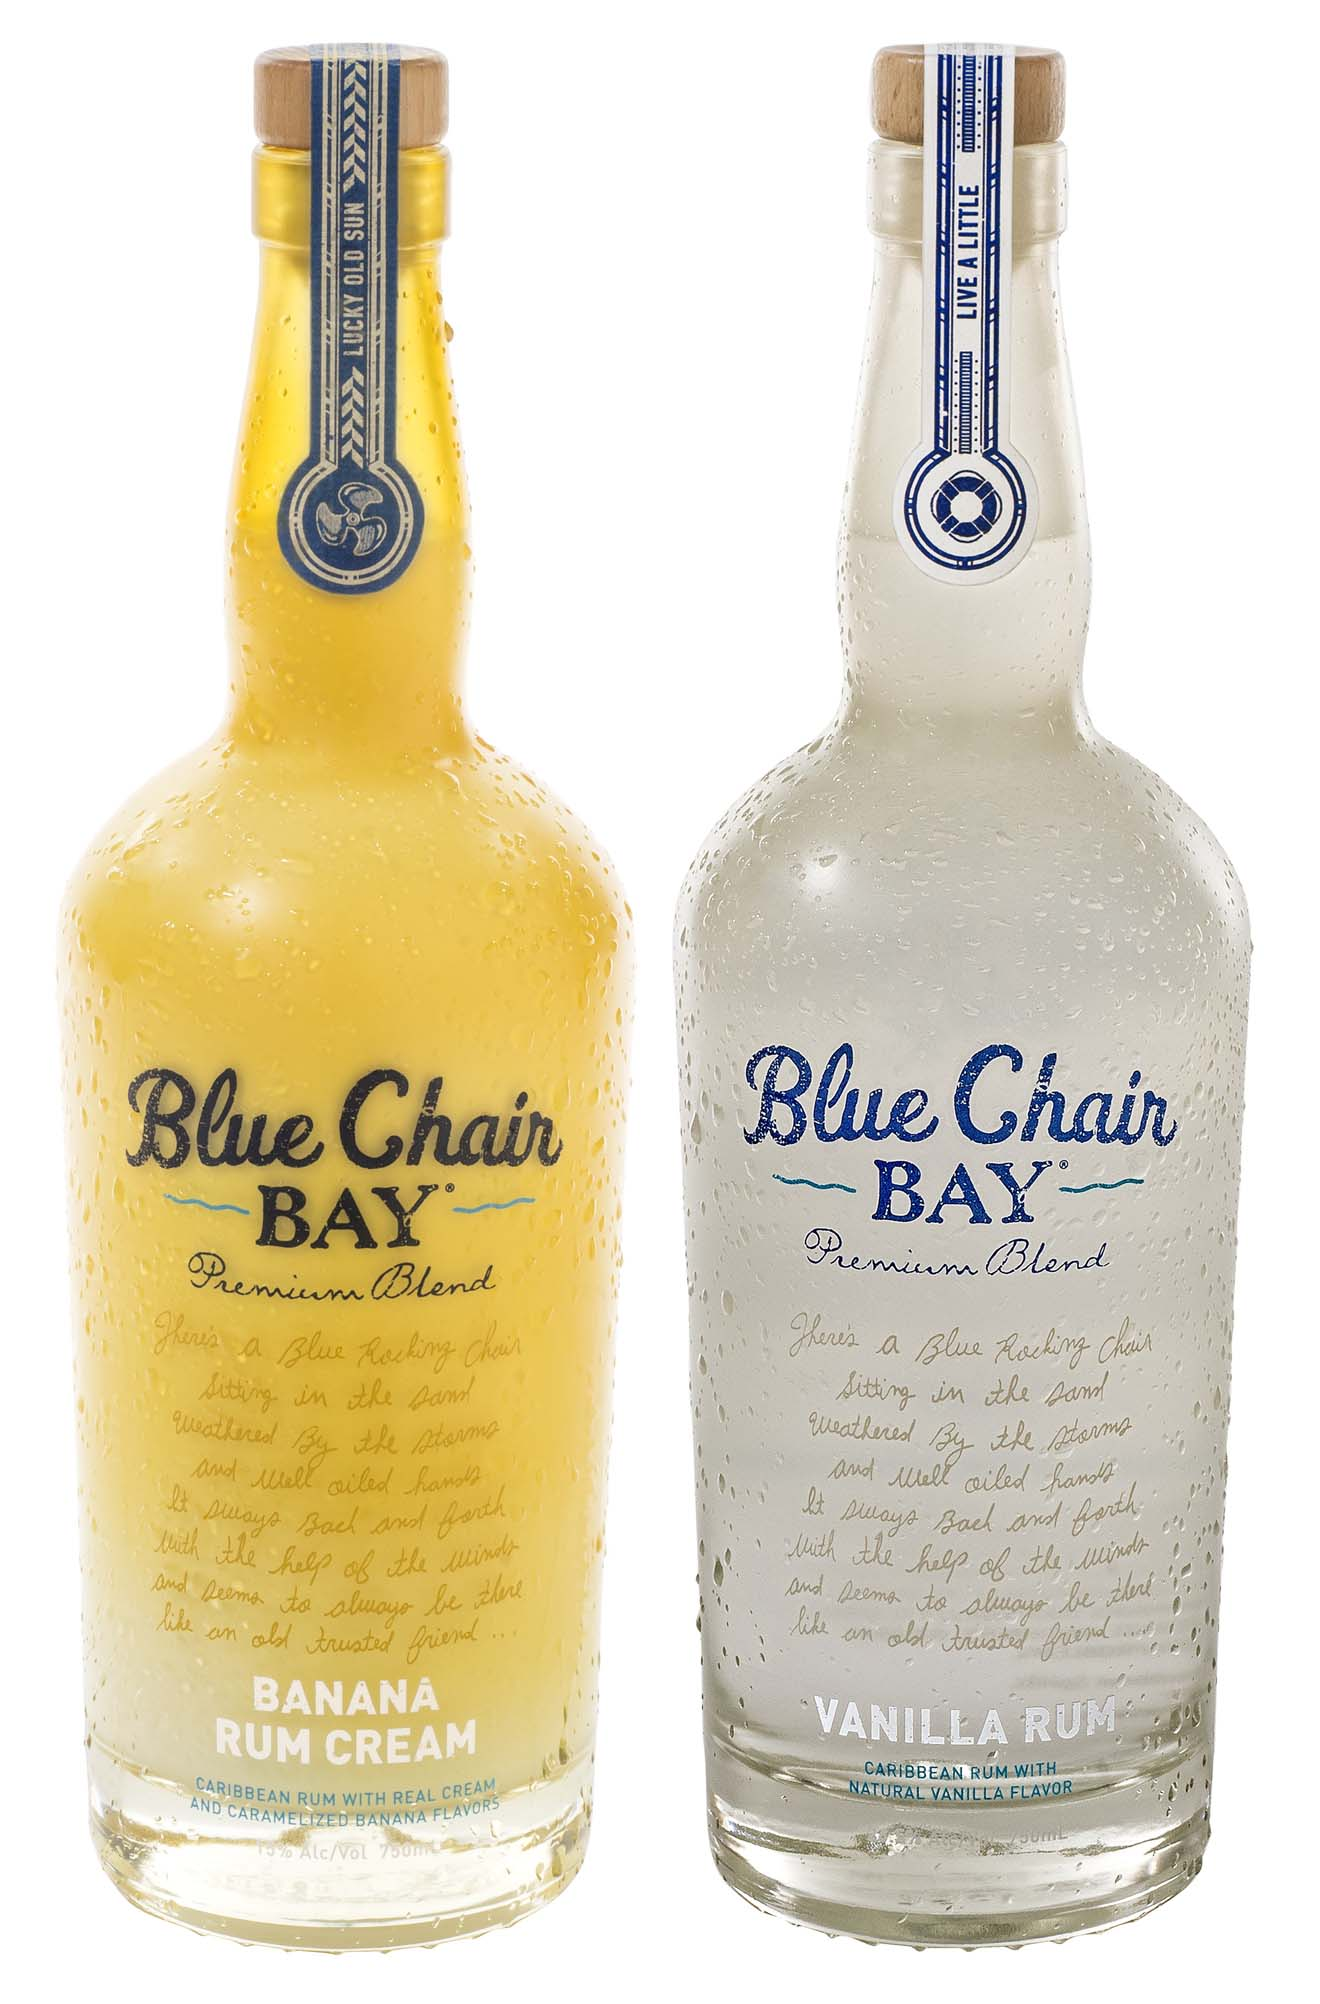 Blue Chair Bay Rum Kenny Chesney S Blue Chair Bay Rum Adds New Vanilla And Banana Rum